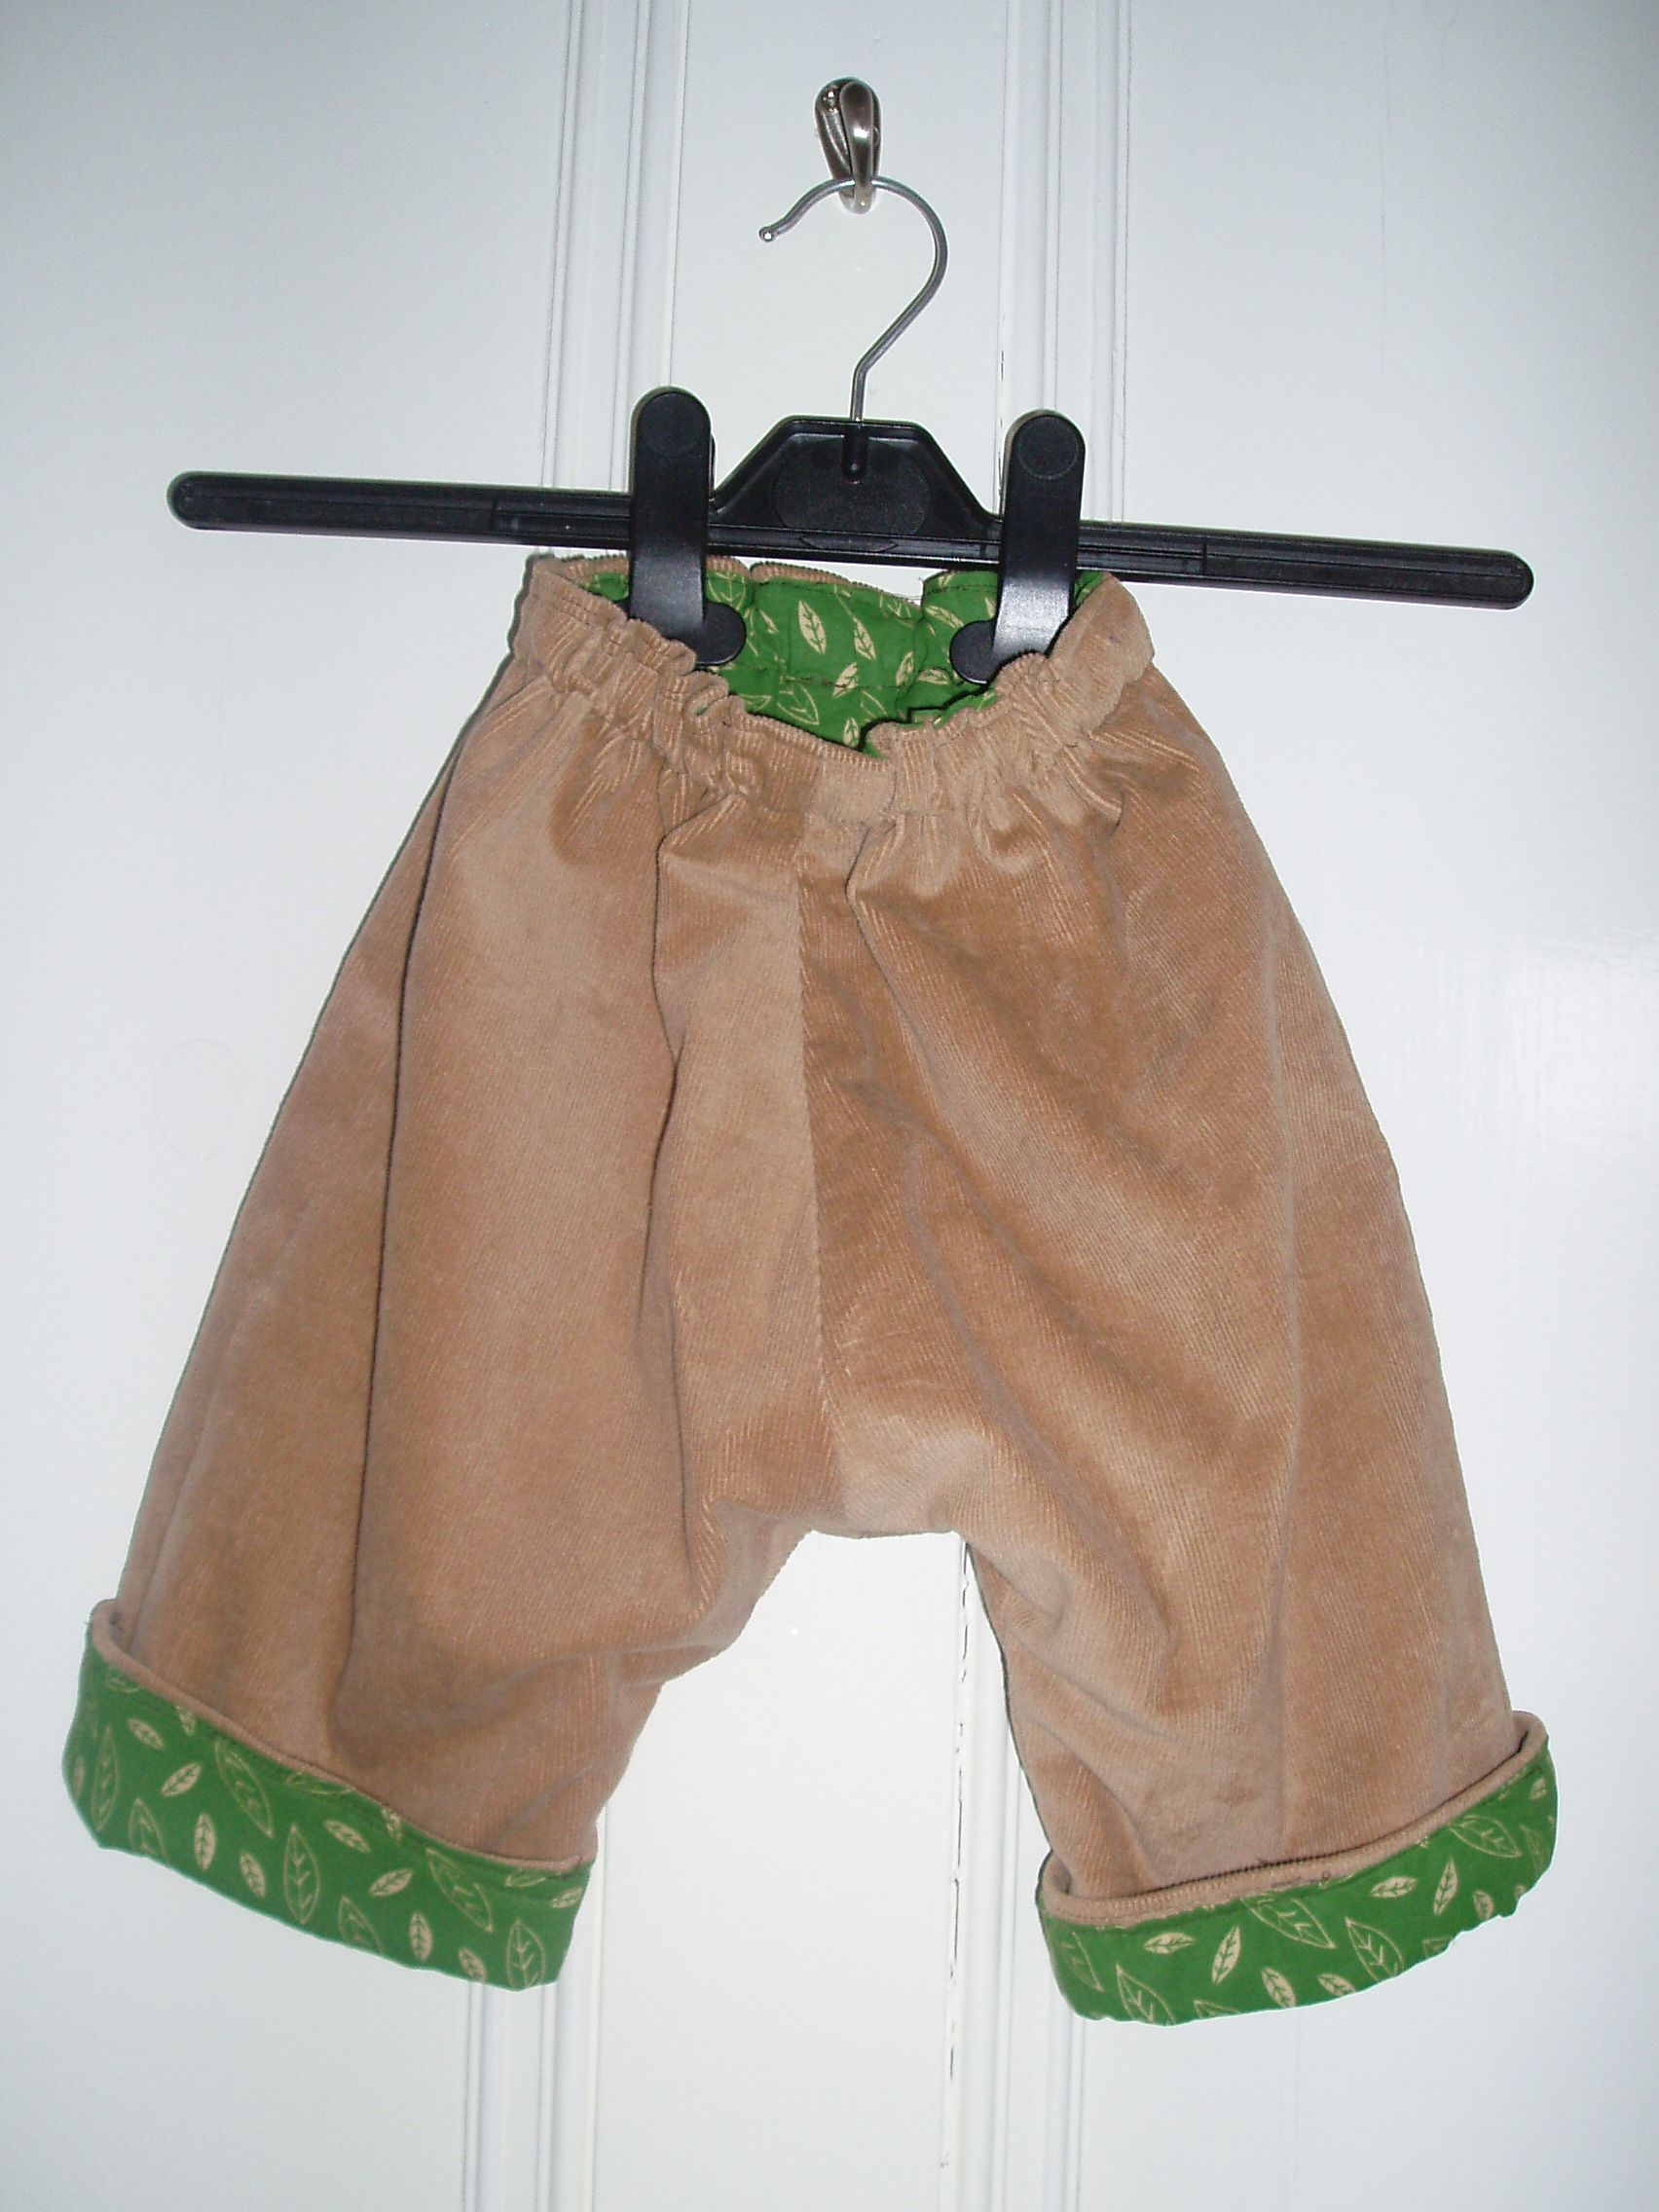 Lined pants-with nappy room!